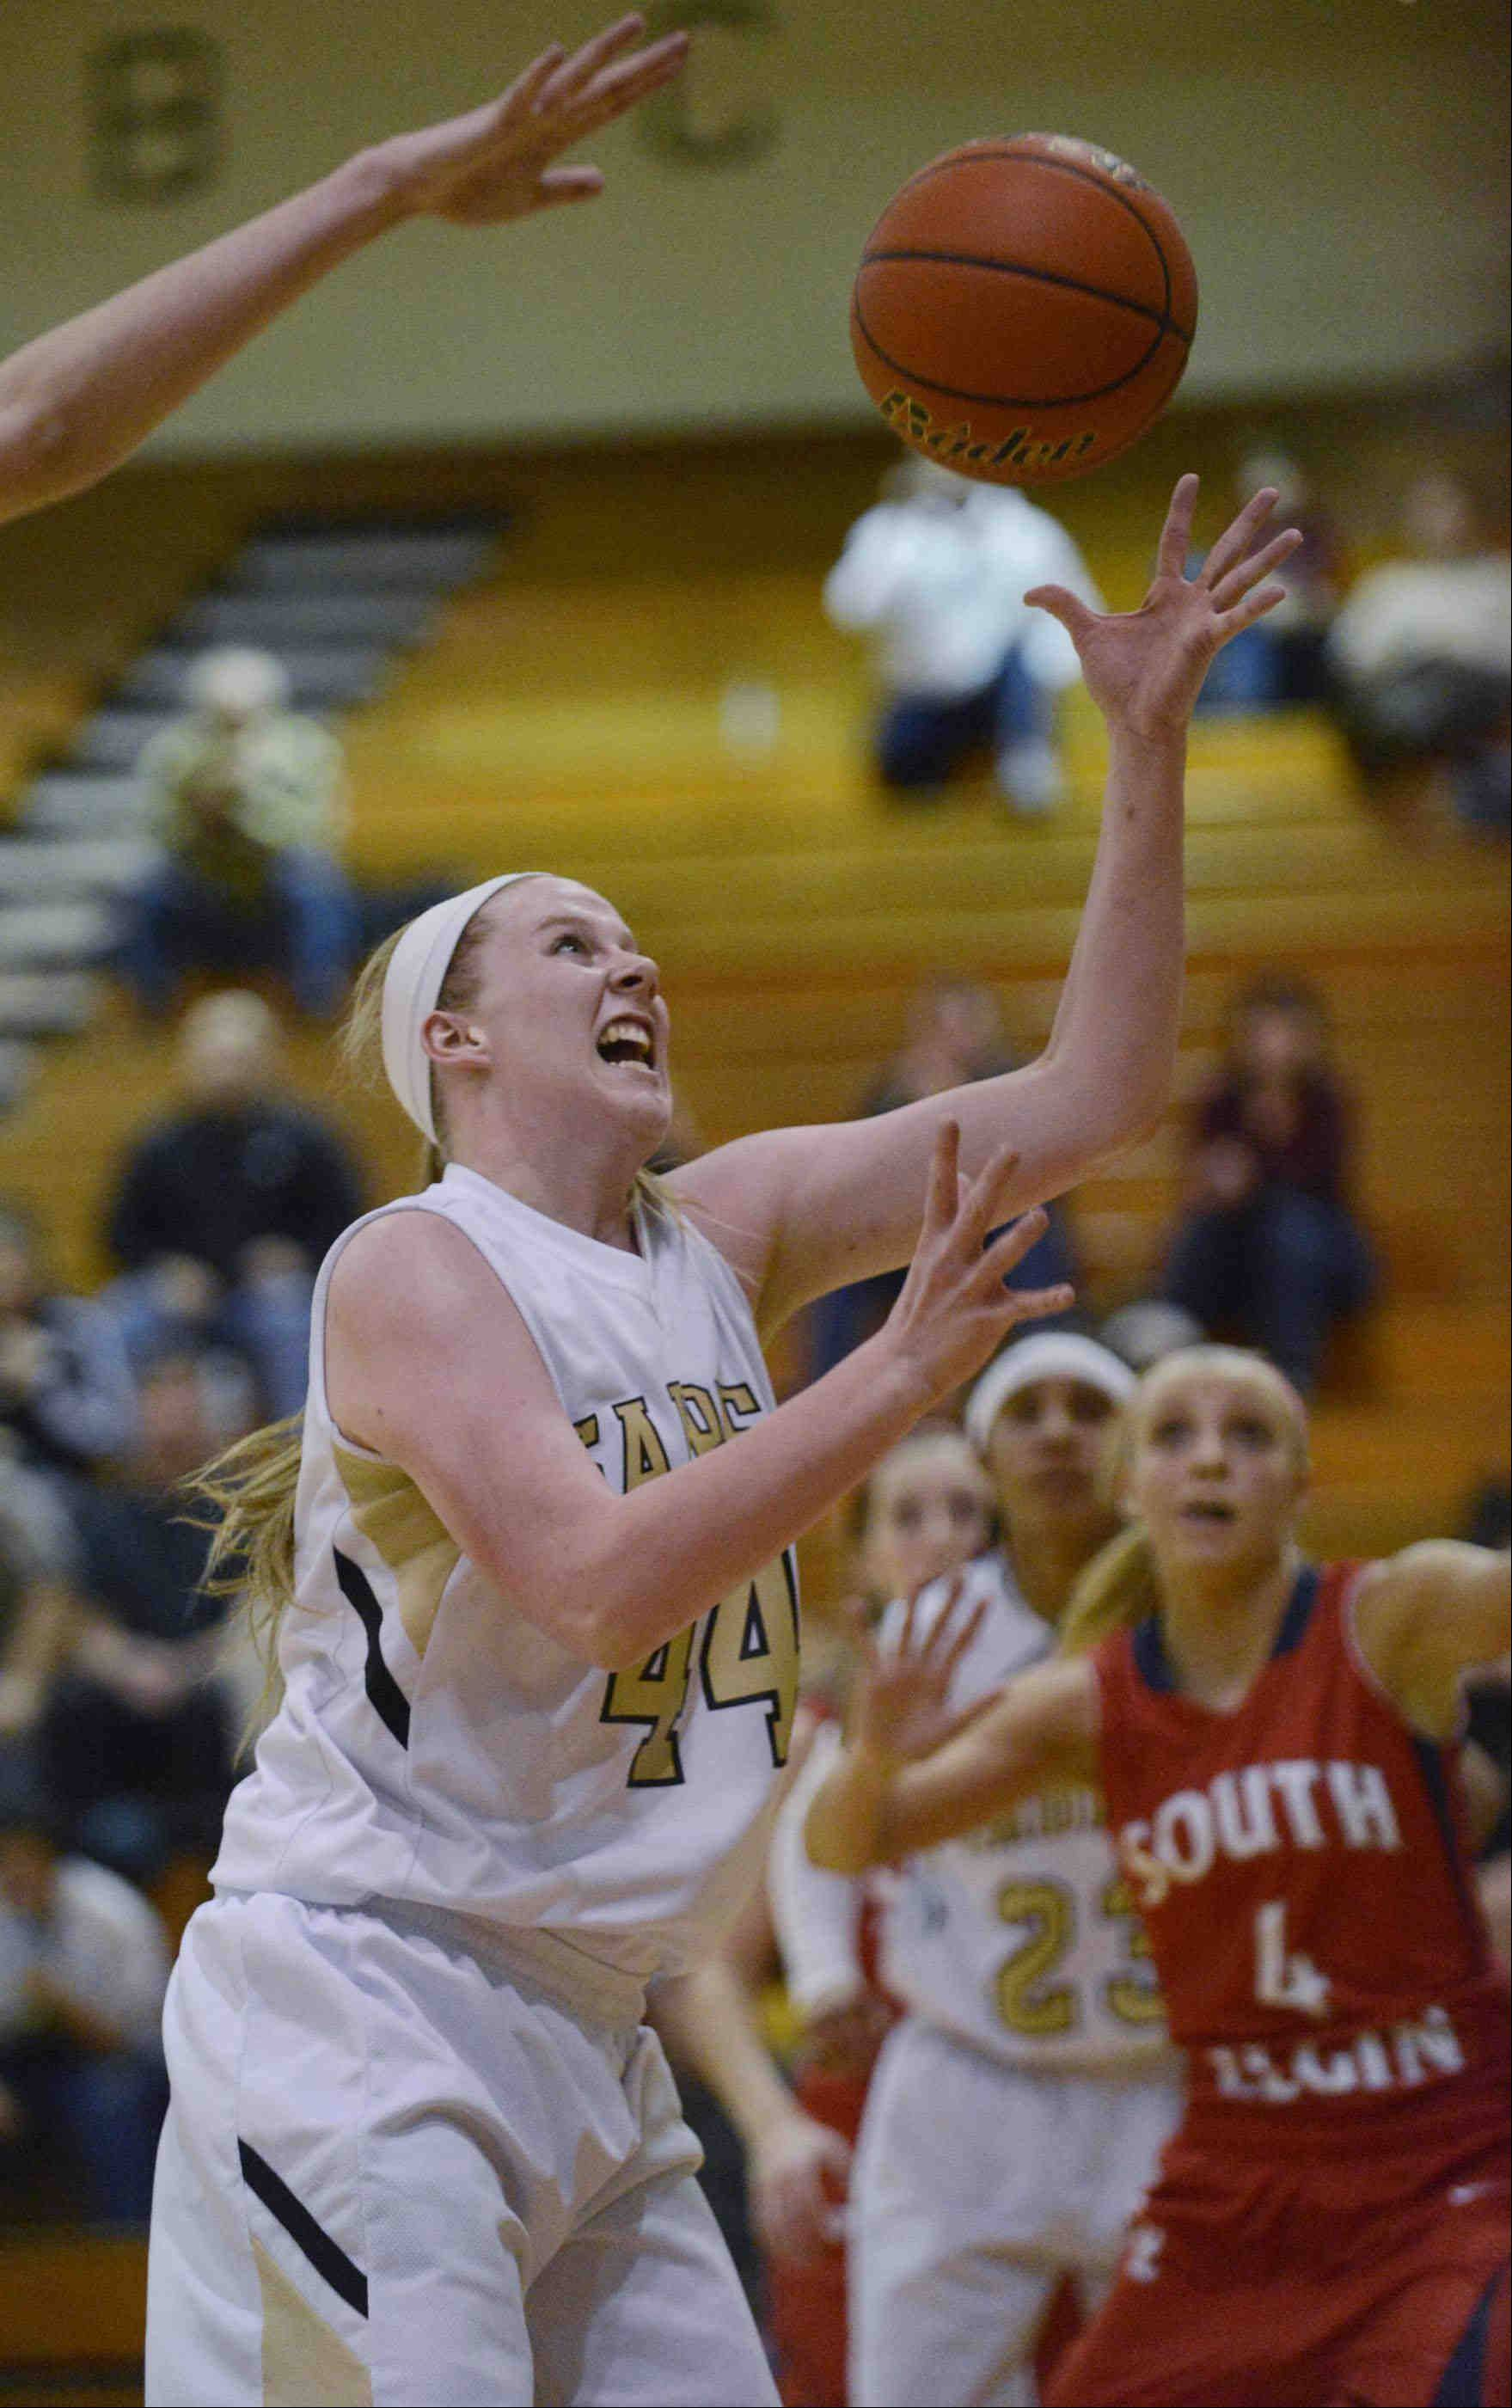 Streamwood senior Hannah McGlone has verbally committed to accept a scholarship offer from Winona State University.